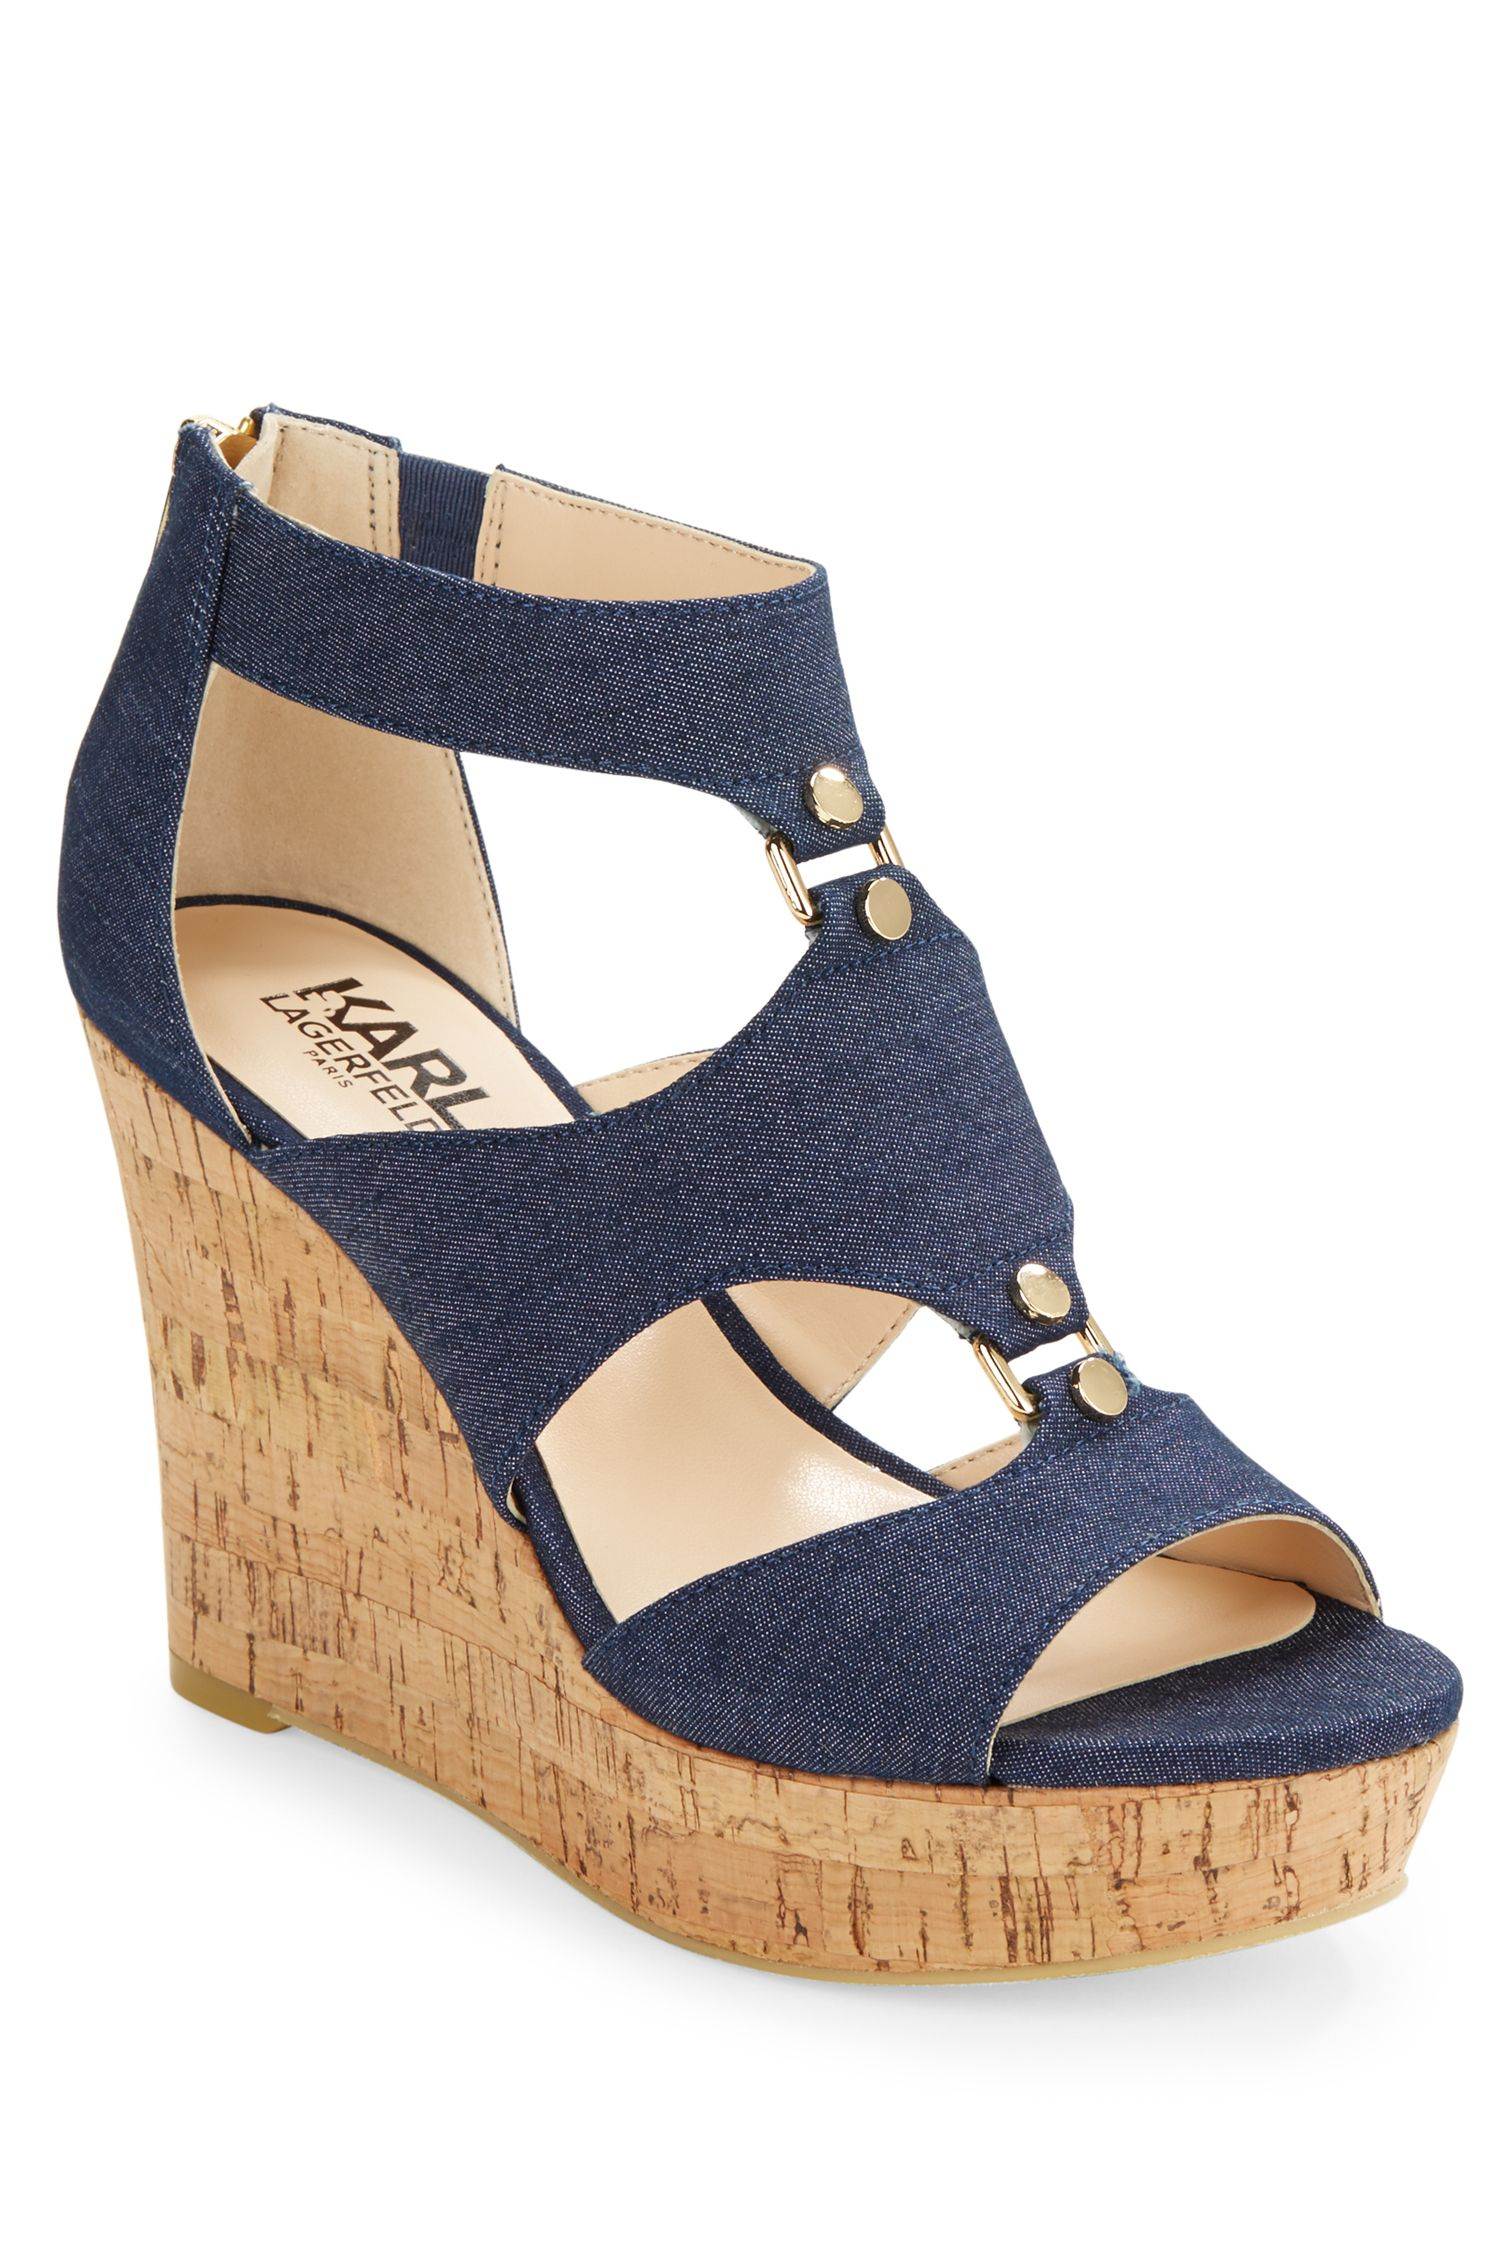 """<p>Neutral wedges make the whole denim shoe trend accessible for easy-breezy wear any day of the week (bonus if they're ultra-comfy). Reach for them with white pants, dresses, and even a pair of velvet shorts.</p><p><em>Karl Lagerfeld Savaoie Platform Wedge Sandals, $109&#x3B; </em><a href=""""http://www.lordandtaylor.com/webapp/wcs/stores/servlet/en/lord-and-taylor/savoie-platform-wedge-sandals"""" target=""""_blank""""><em>lordandtaylor.com</em></a></p>"""